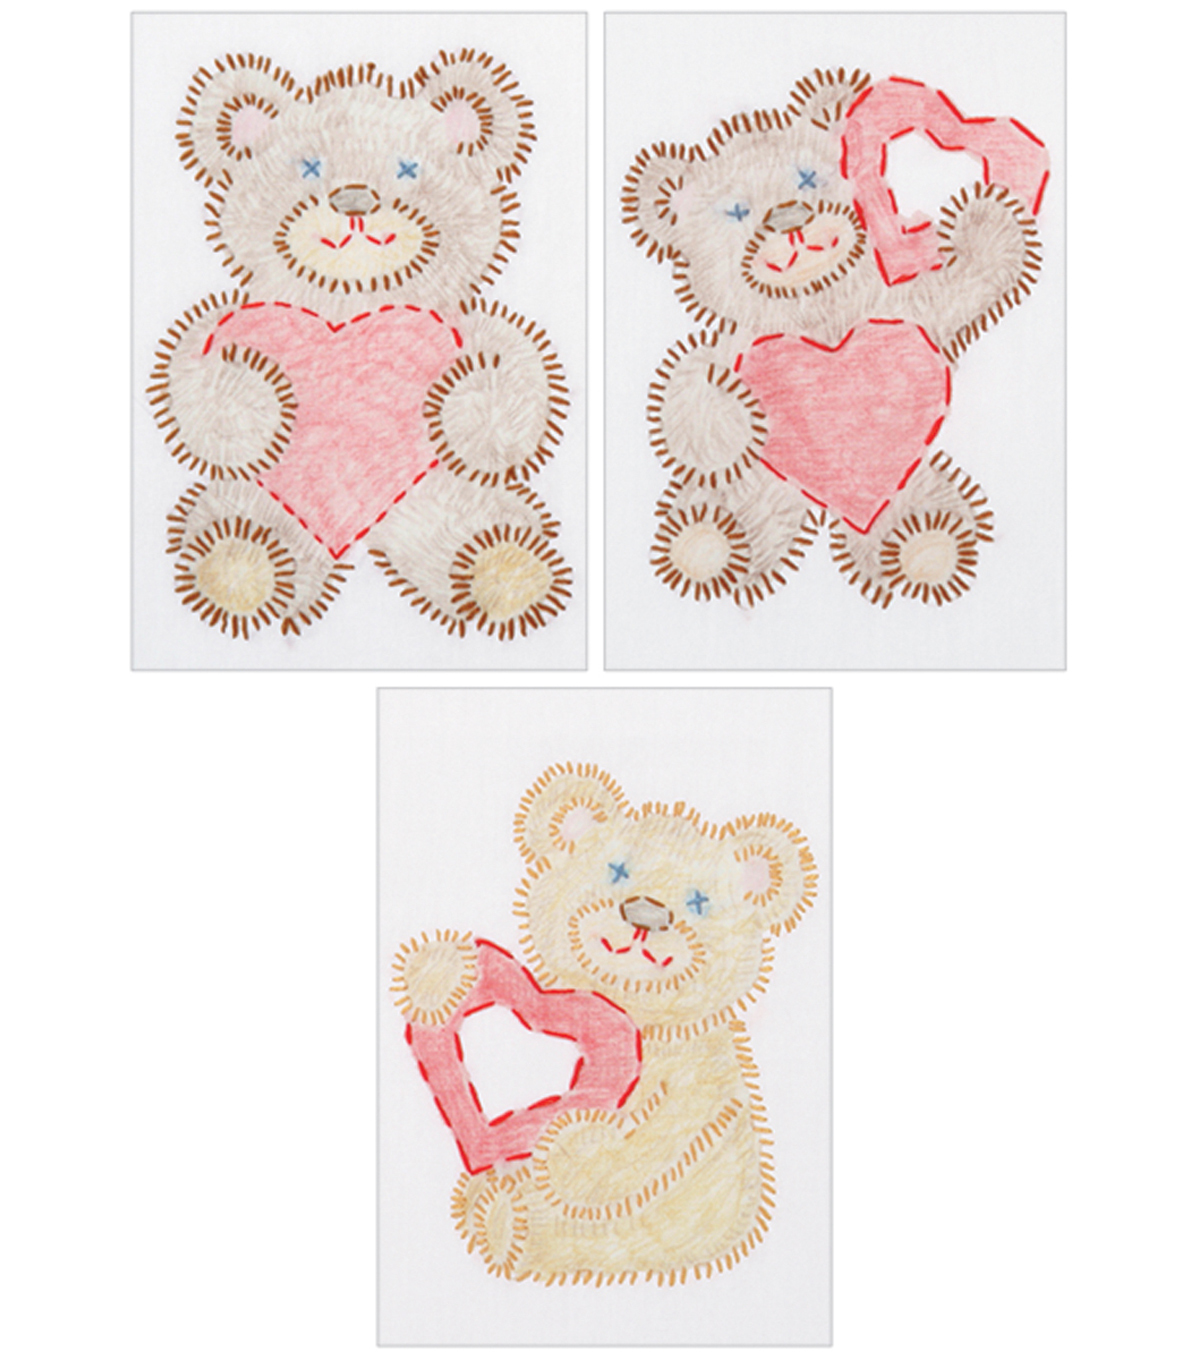 White Stamped Beginner Embroidery Kit 6\u0022X8\u0022 Samplers 3/Pkg-Fuzzy Bears